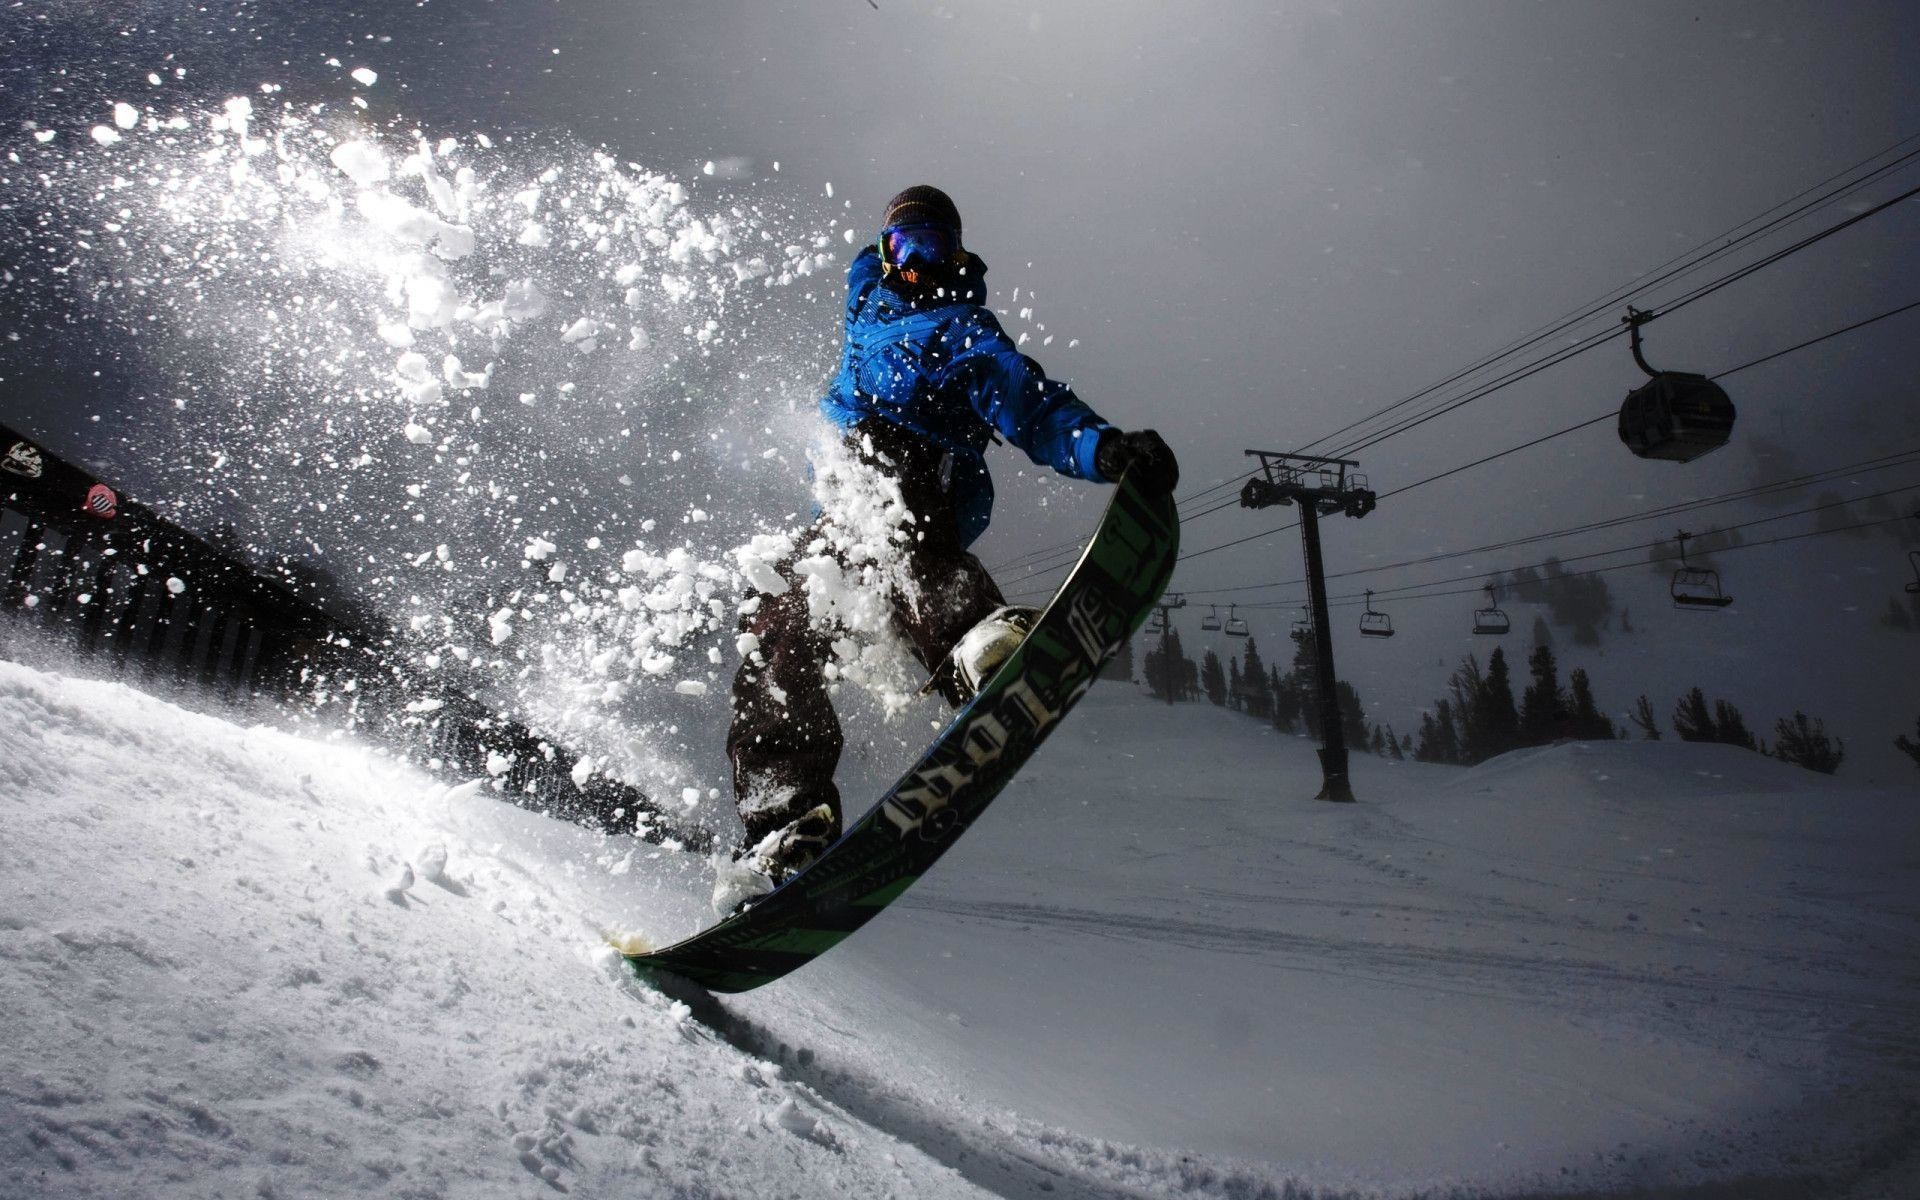 1920x1200 - Snowboarding Wallpapers 26